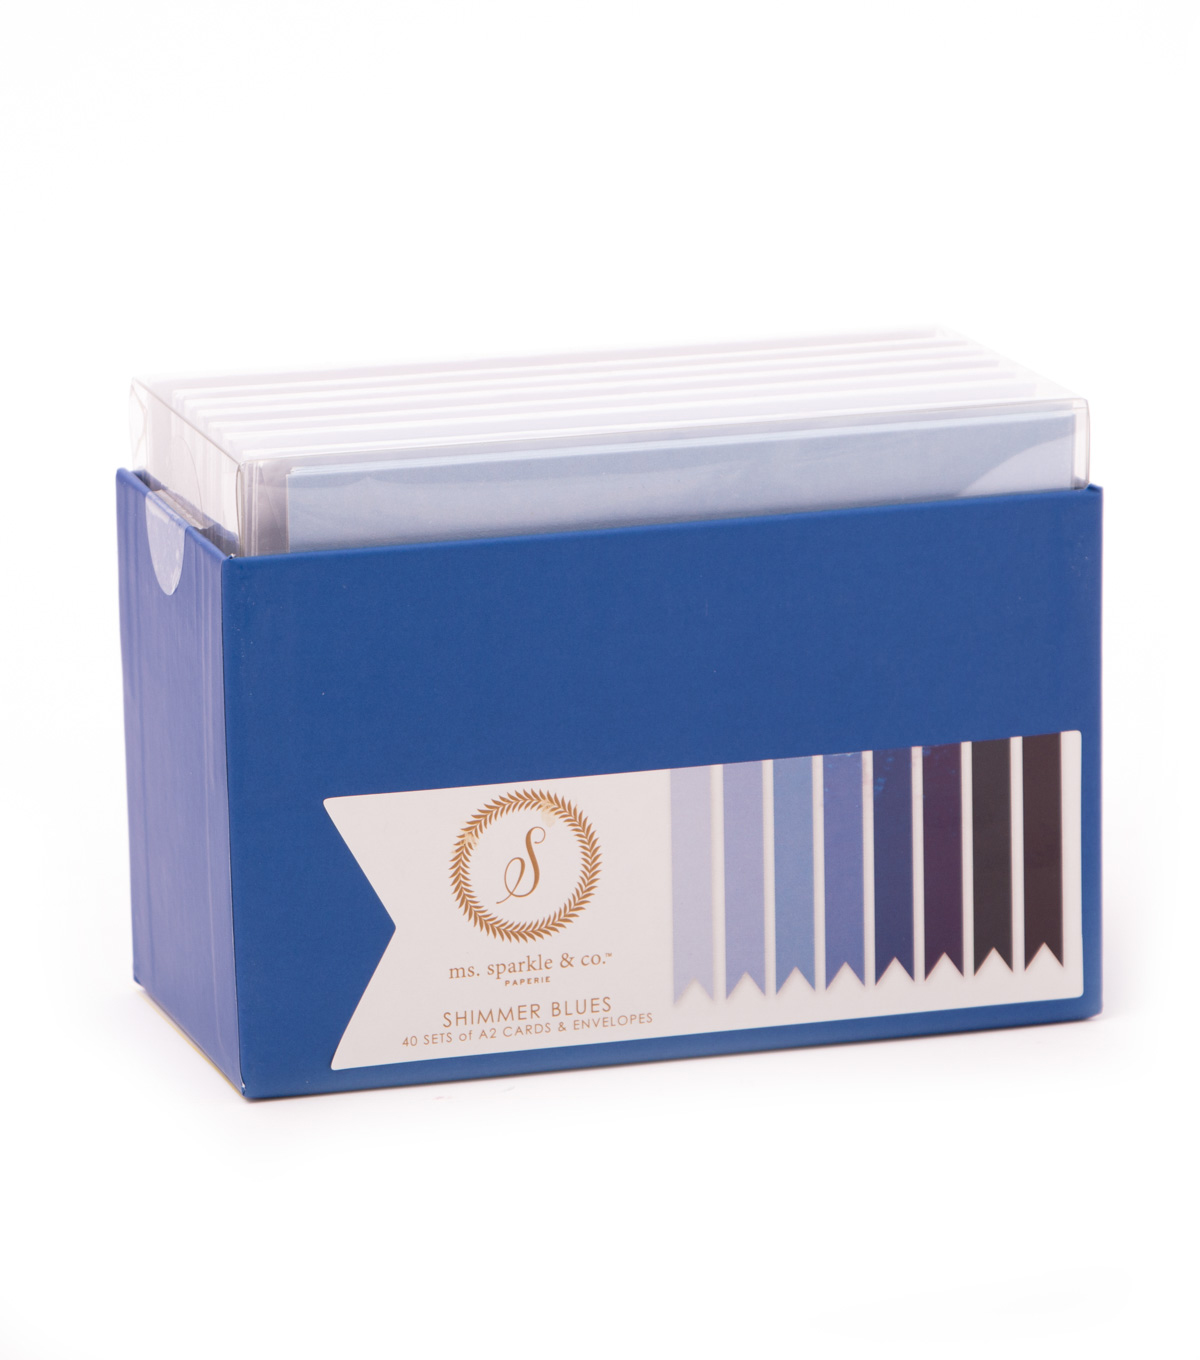 Ms. Sparkle & Co. Pack of 40 A2 Cards & Envelopes-Shimmer Blues